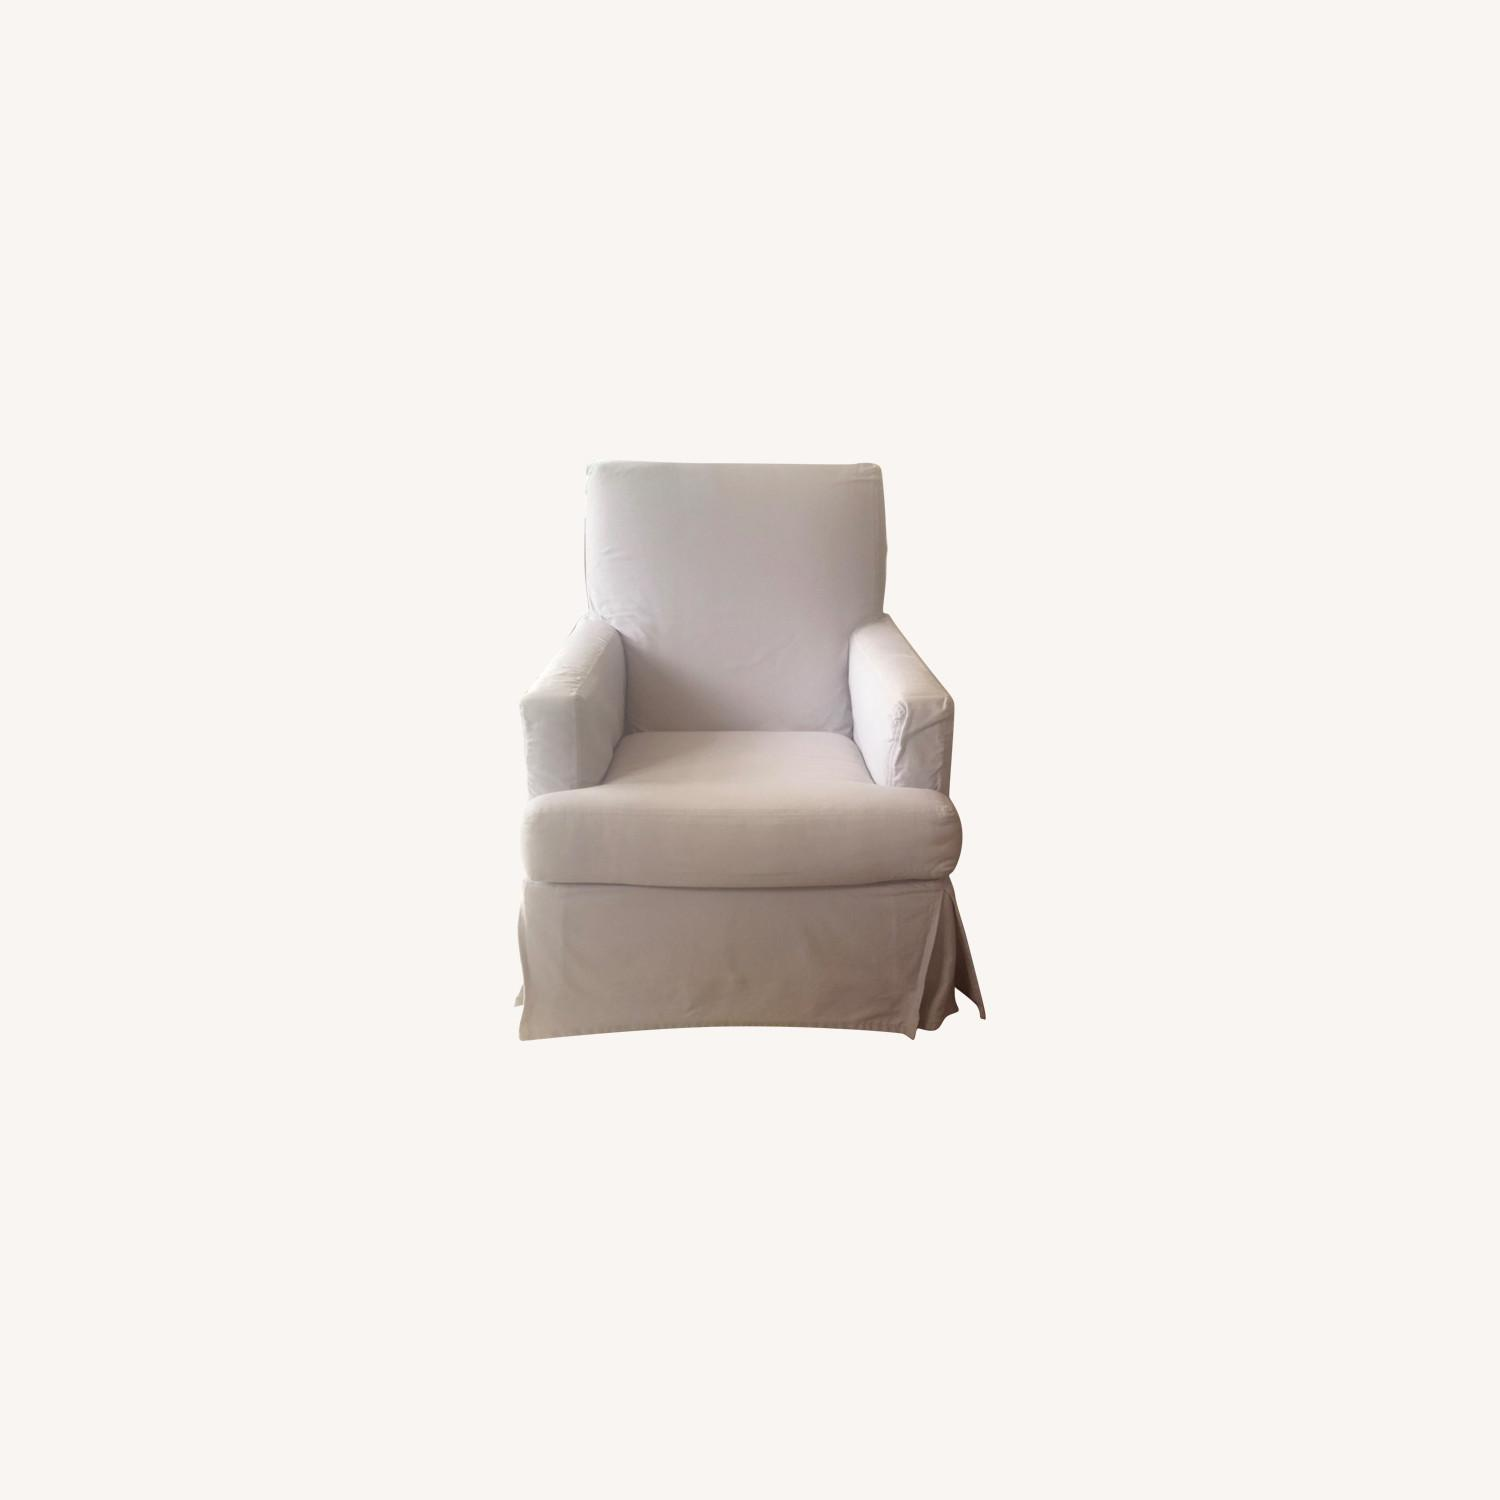 Pottery Barn Glider Chair - image-0